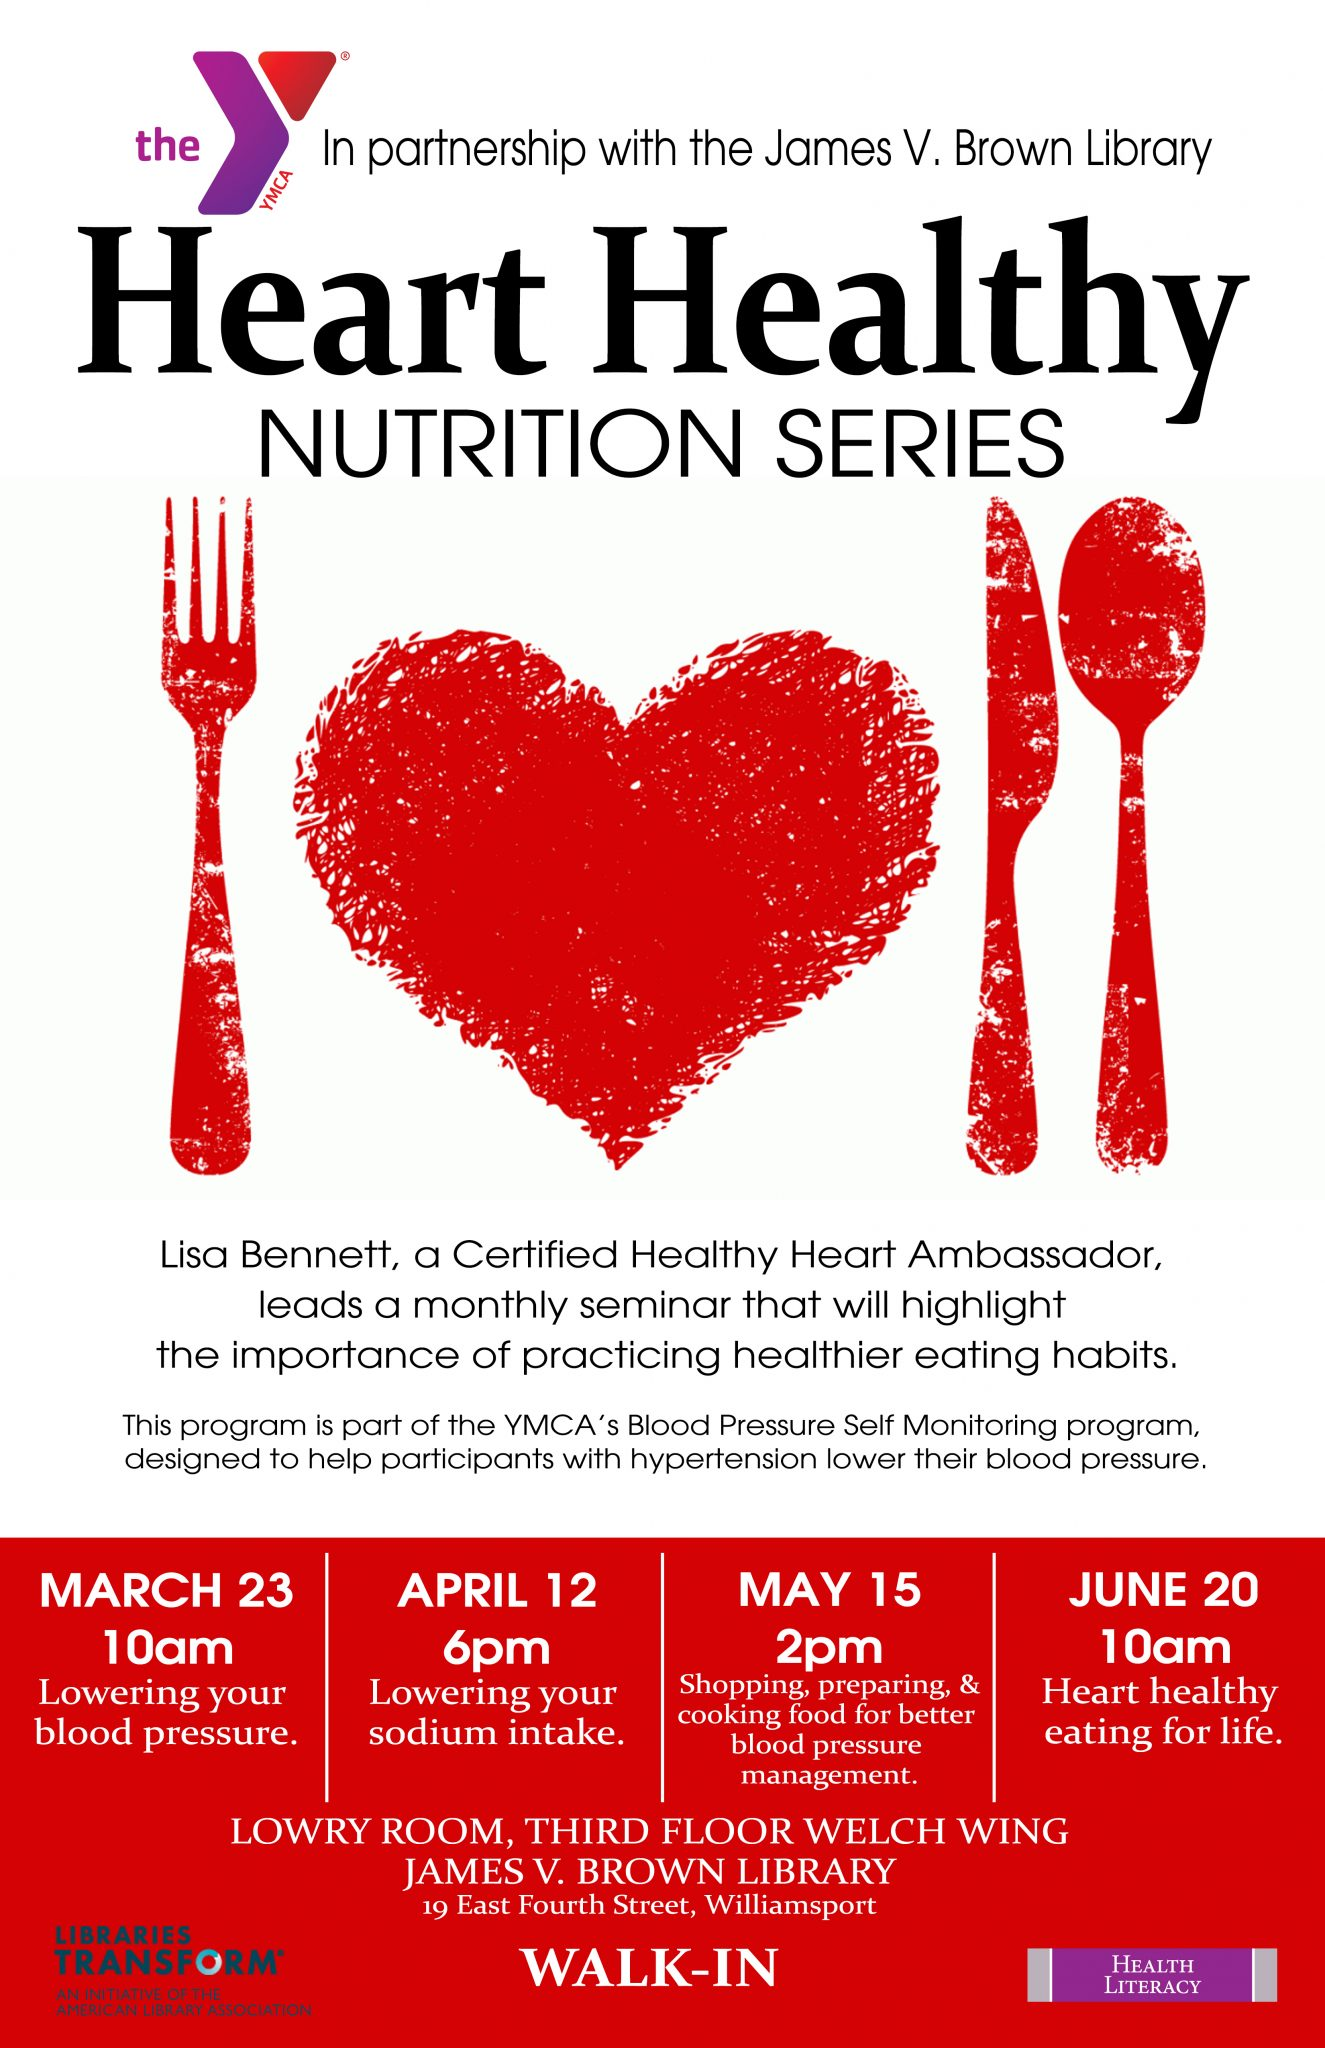 Library partners with ymca to offer heart healthy nutrition series the centers for disease control and prevention estimate that one out of every three adults have high blood pressure and only half have their condition under nvjuhfo Gallery